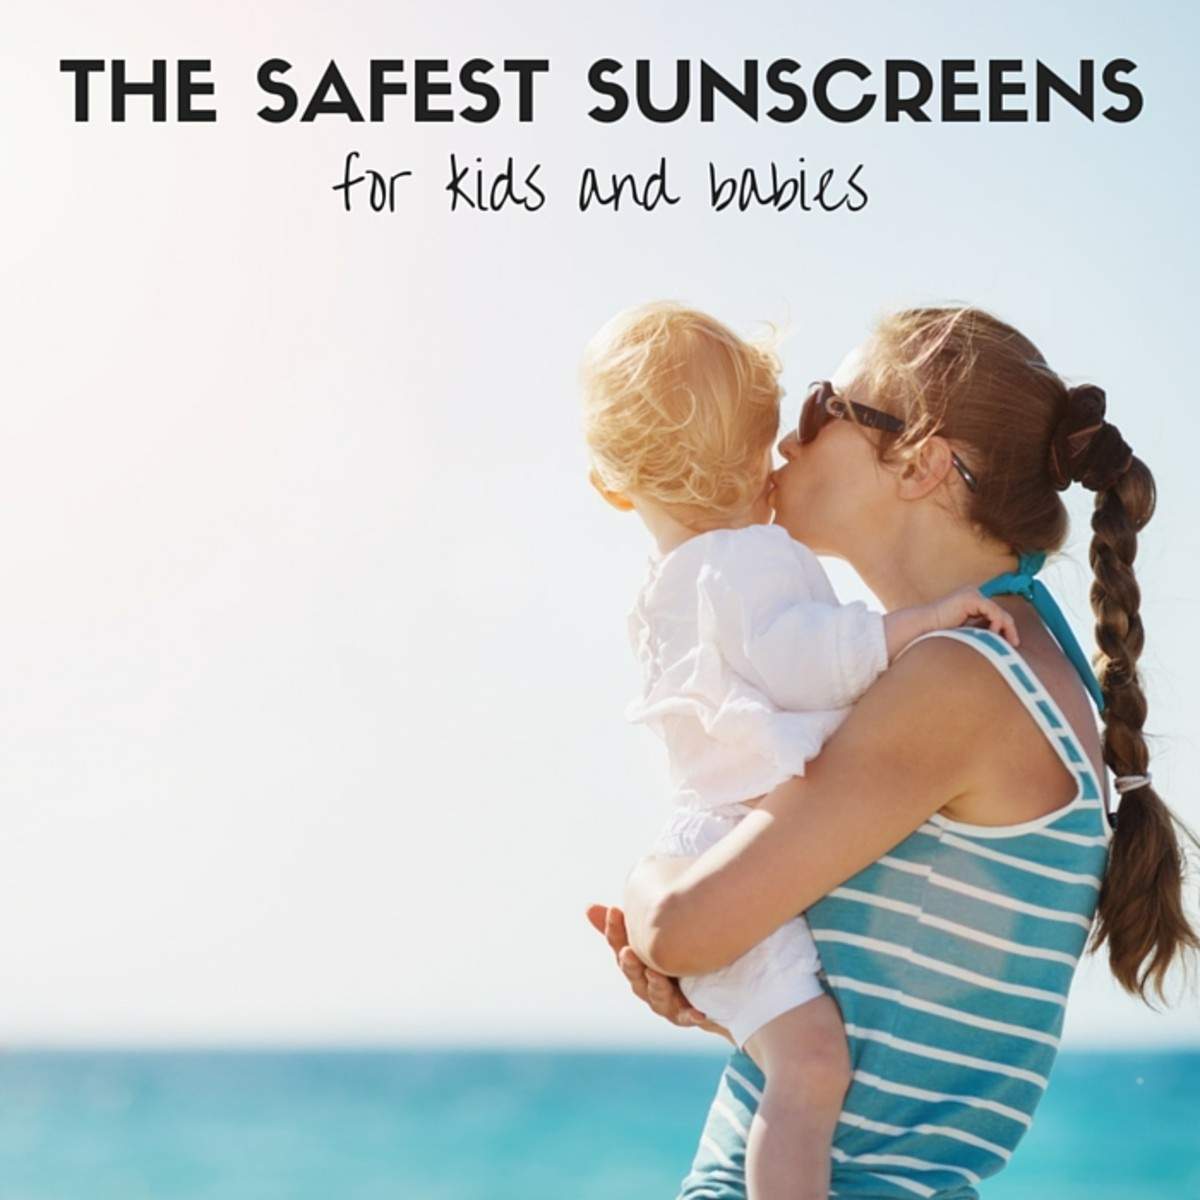 THE BEST & SAFEST SUNSCREENS